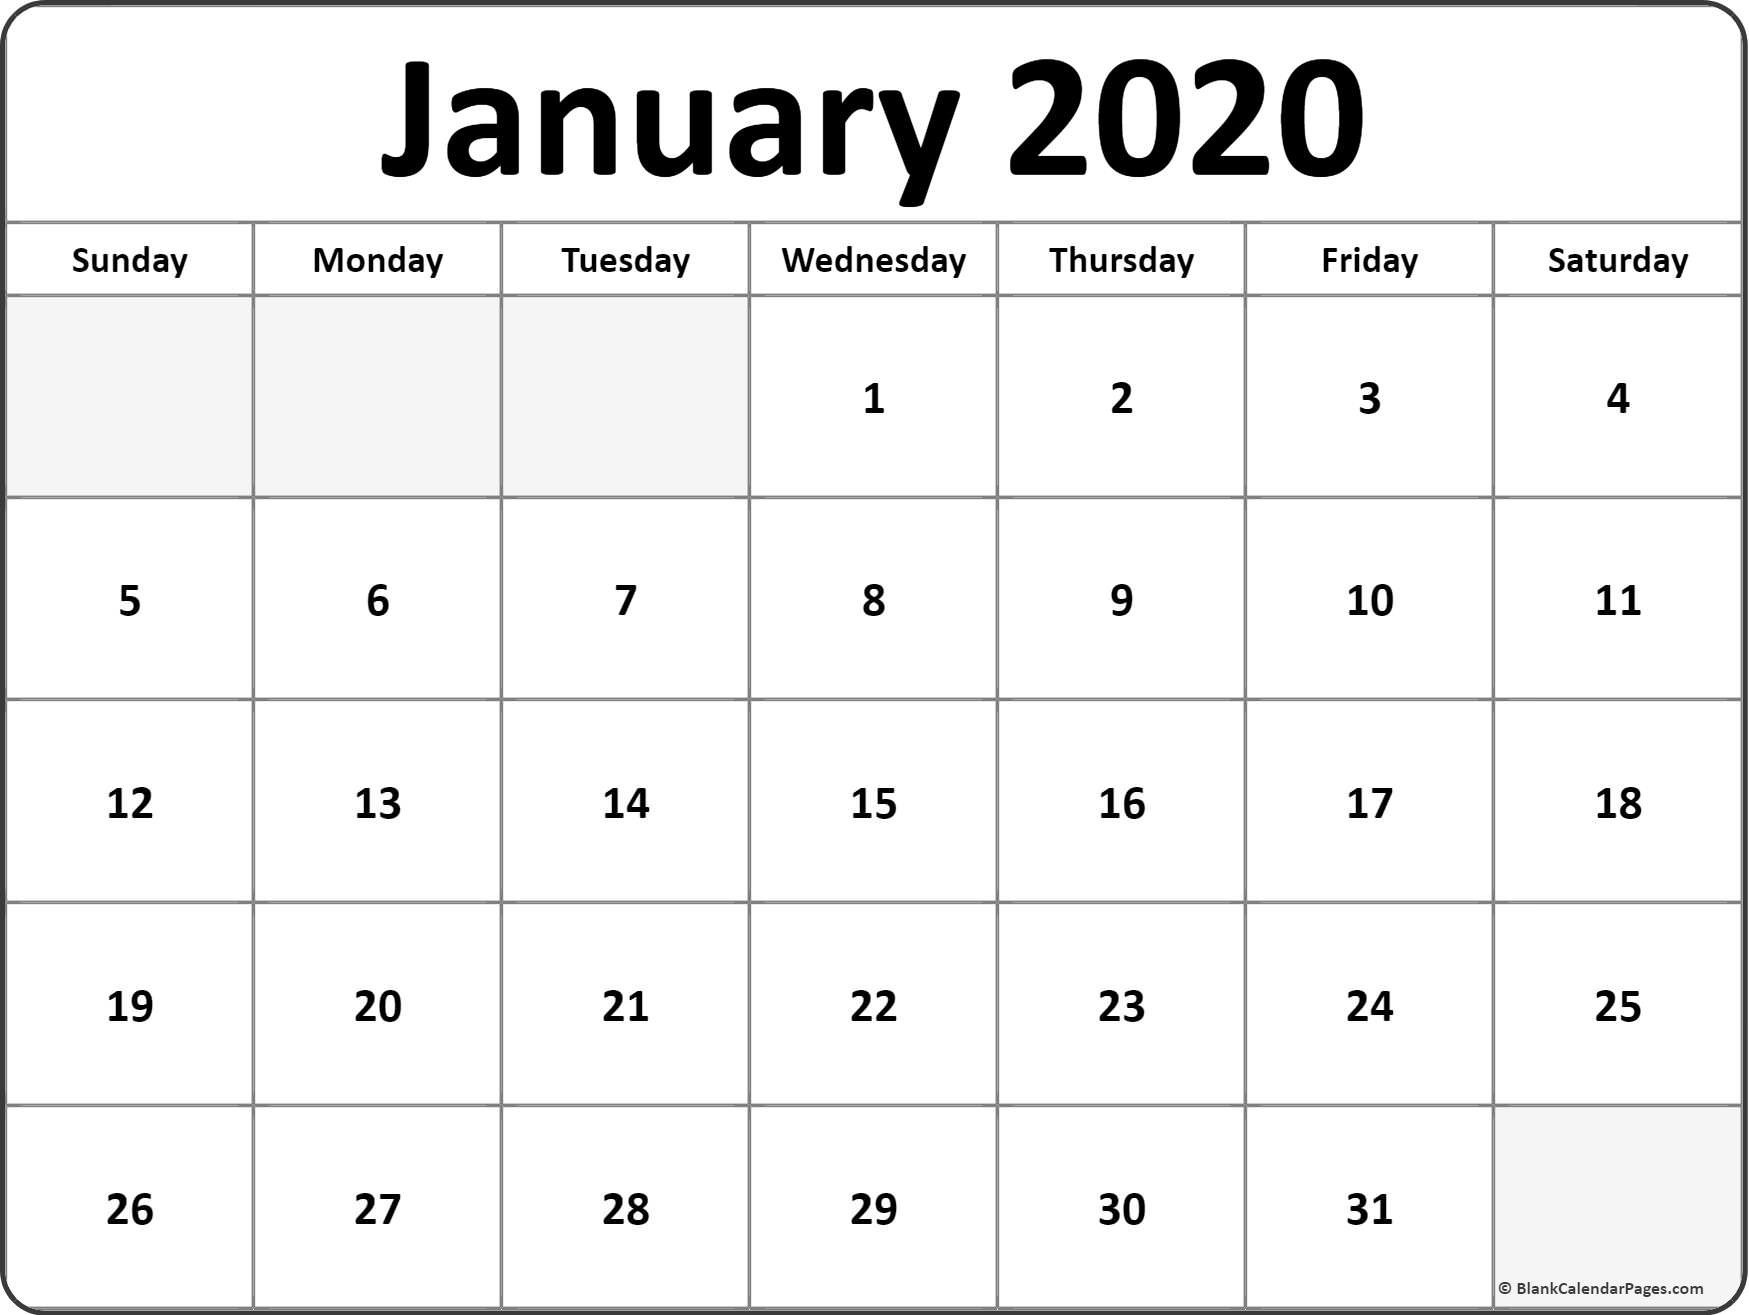 Calendar 2020 January | Lankafuntrip Perky Tamil Calendar 2020 January